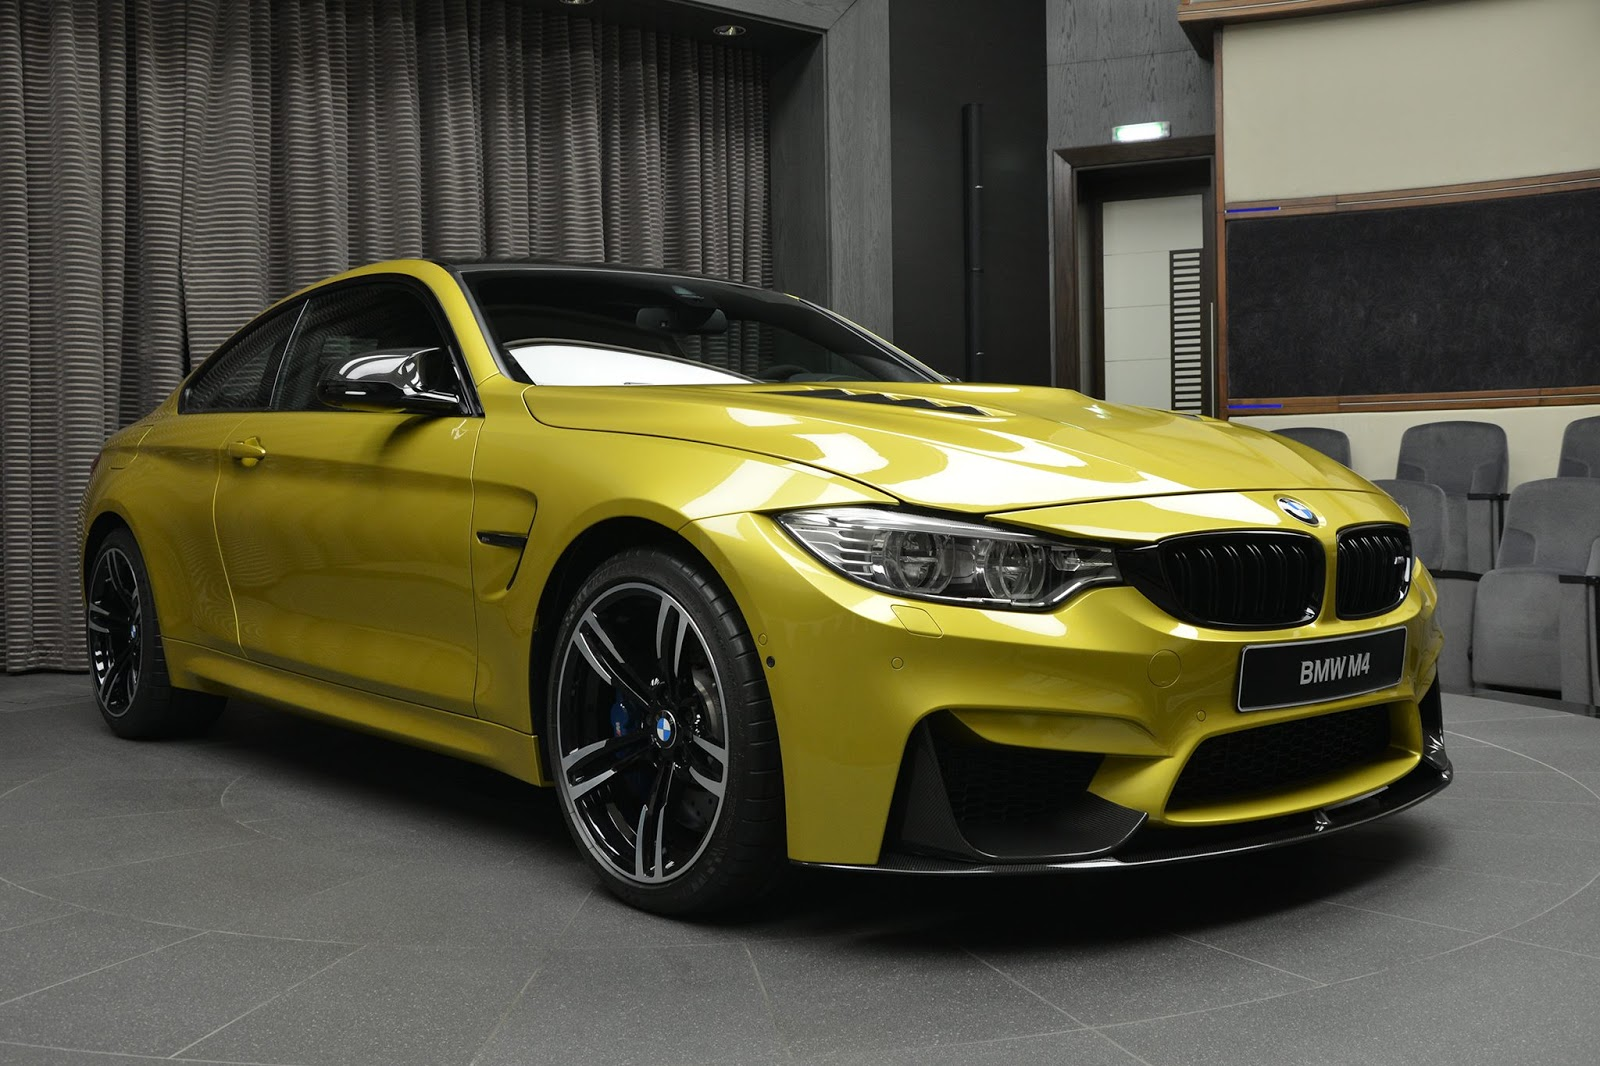 BMW_M4_Austin_Yellow_03